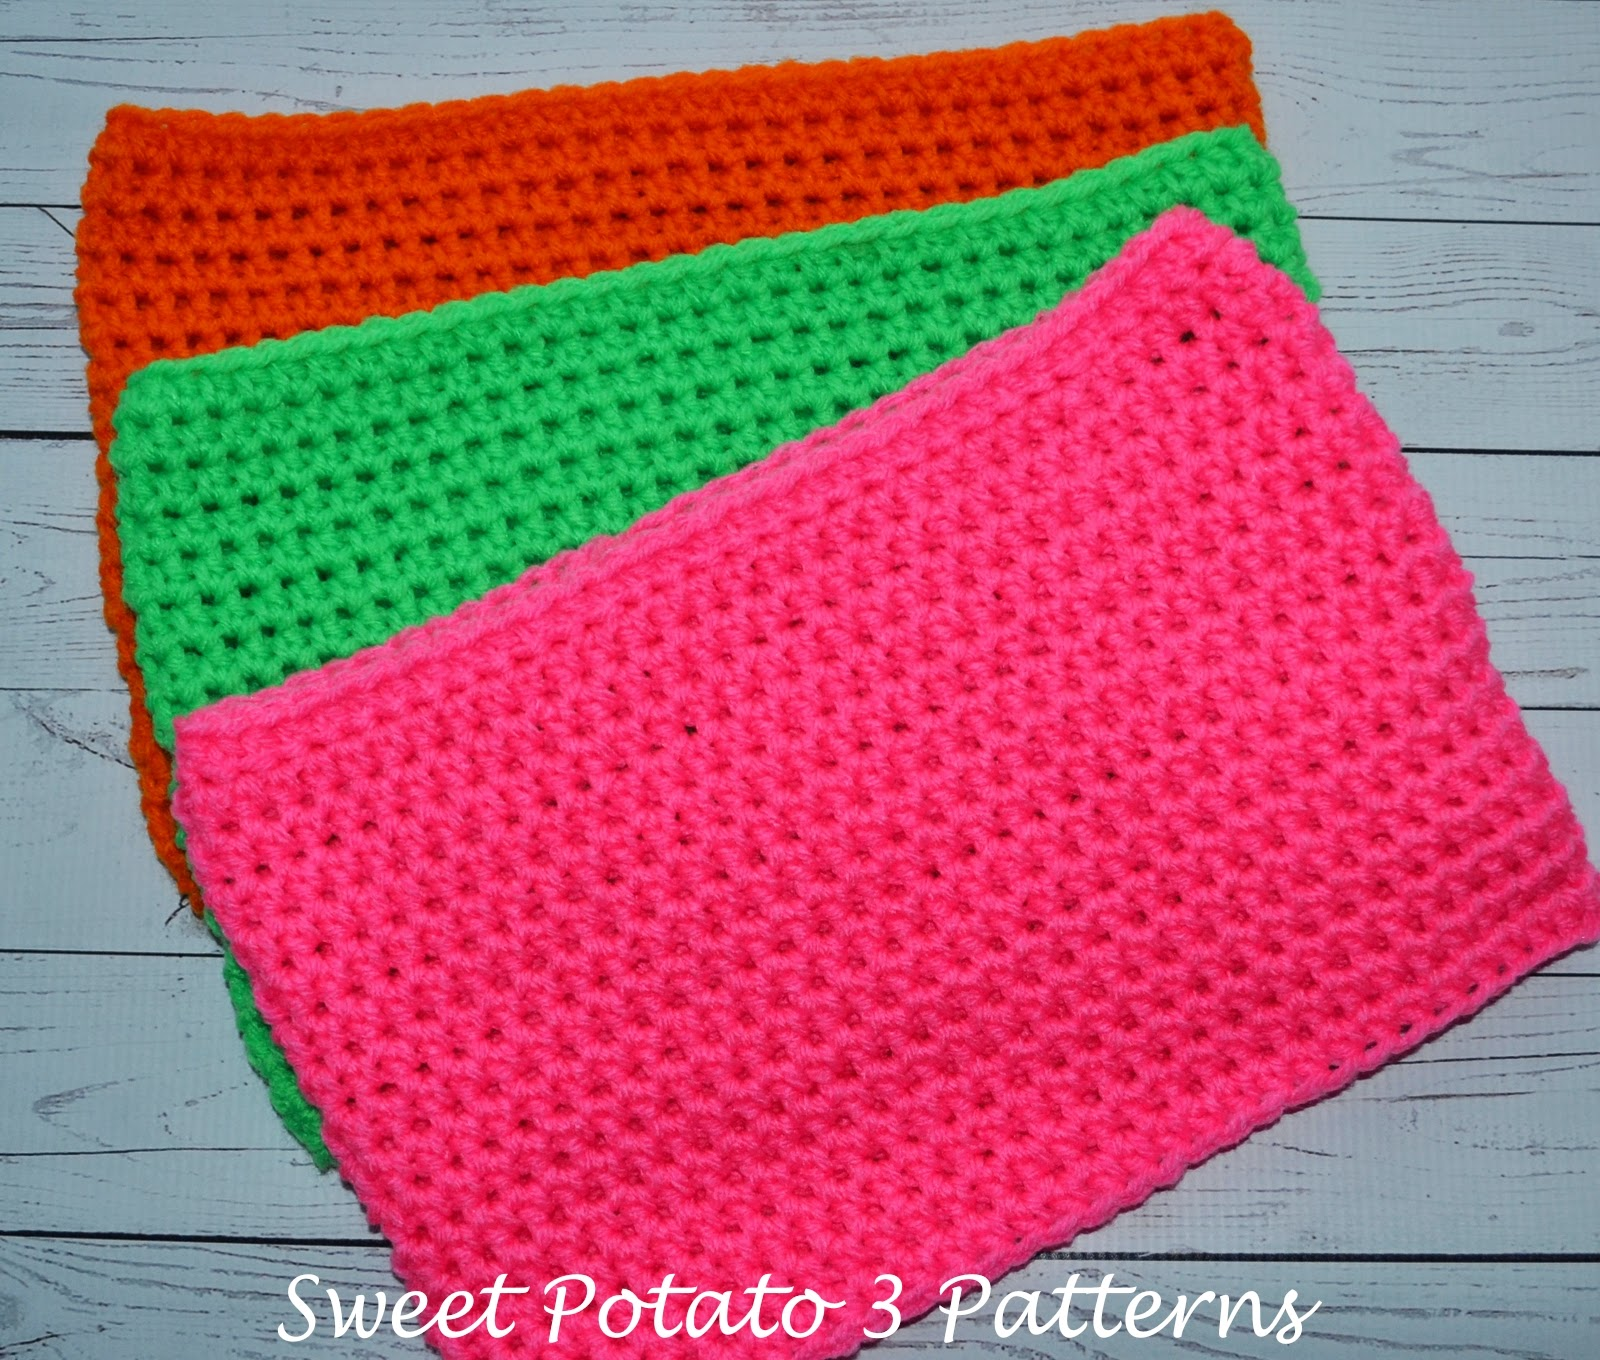 Free mustache cowl crochet pattern sweet potato 3 it is a very basic crochet pattern and can easily be adjusted for any size i made the child size but alternative stitch counts in parenthesis would be bankloansurffo Images